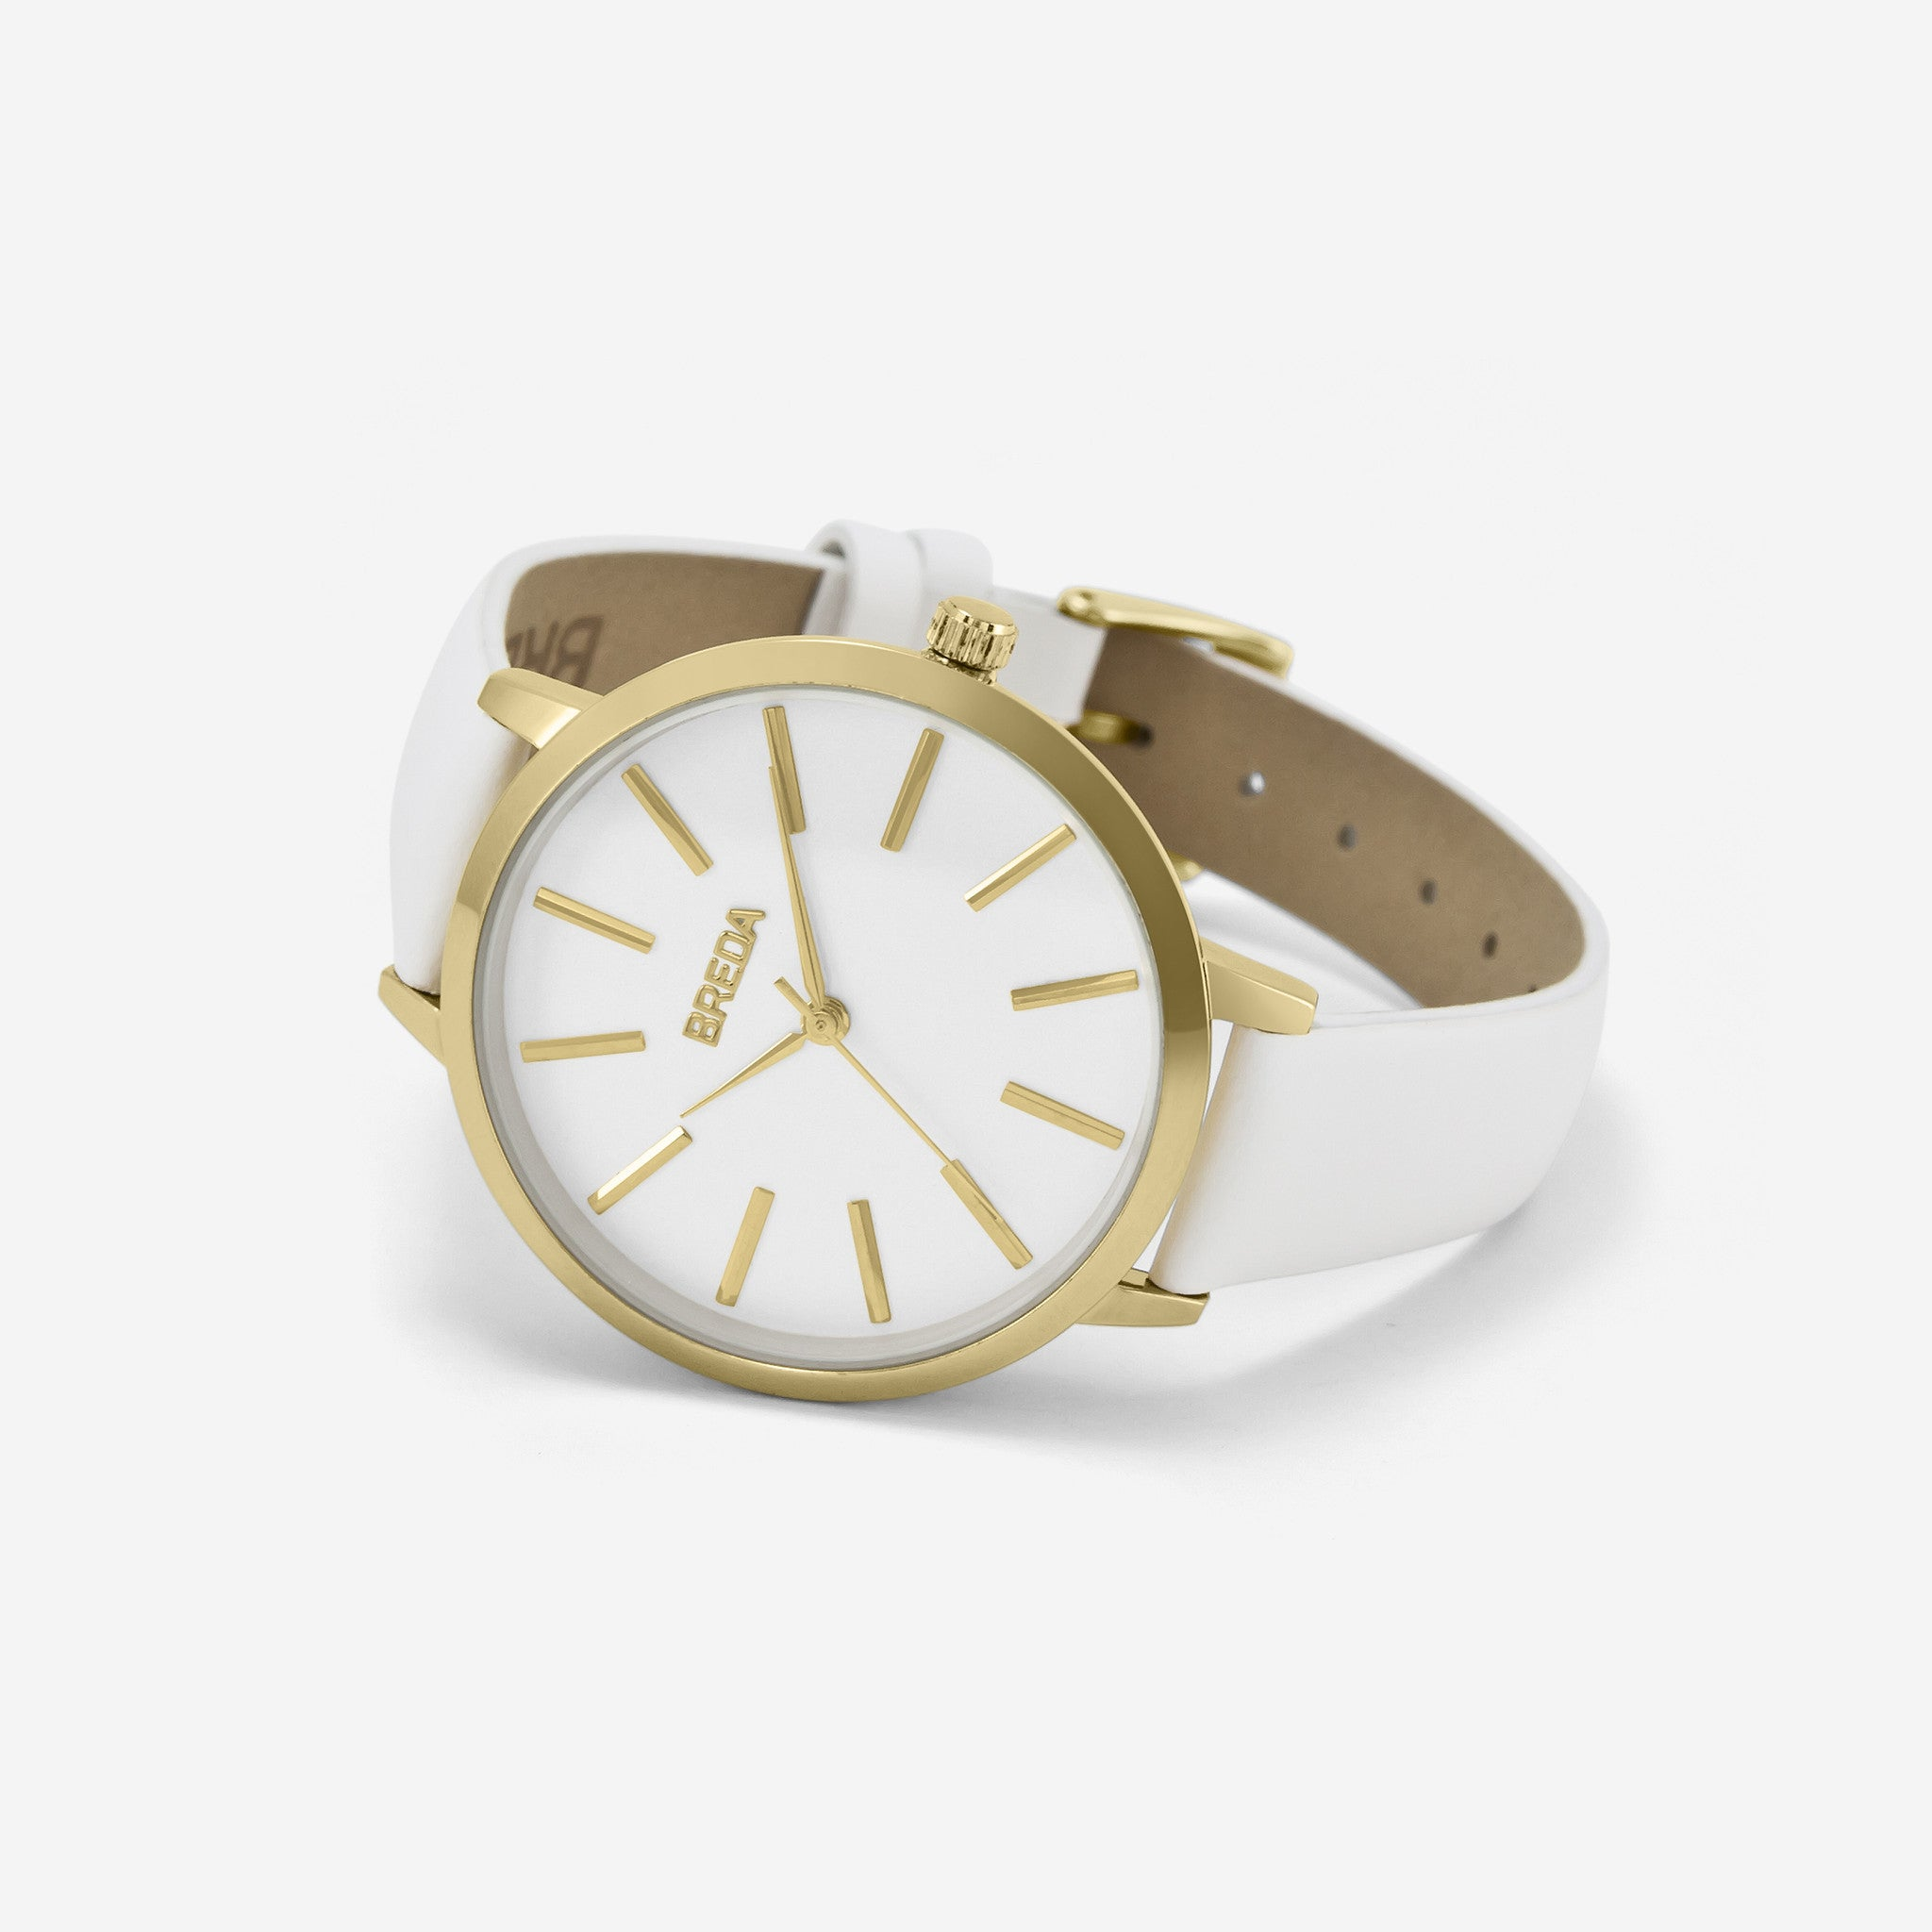 //cdn.shopify.com/s/files/1/0879/6650/products/breda-joule-1722c-gold-white-watch-angle_1024x1024.jpg?v=1490812397